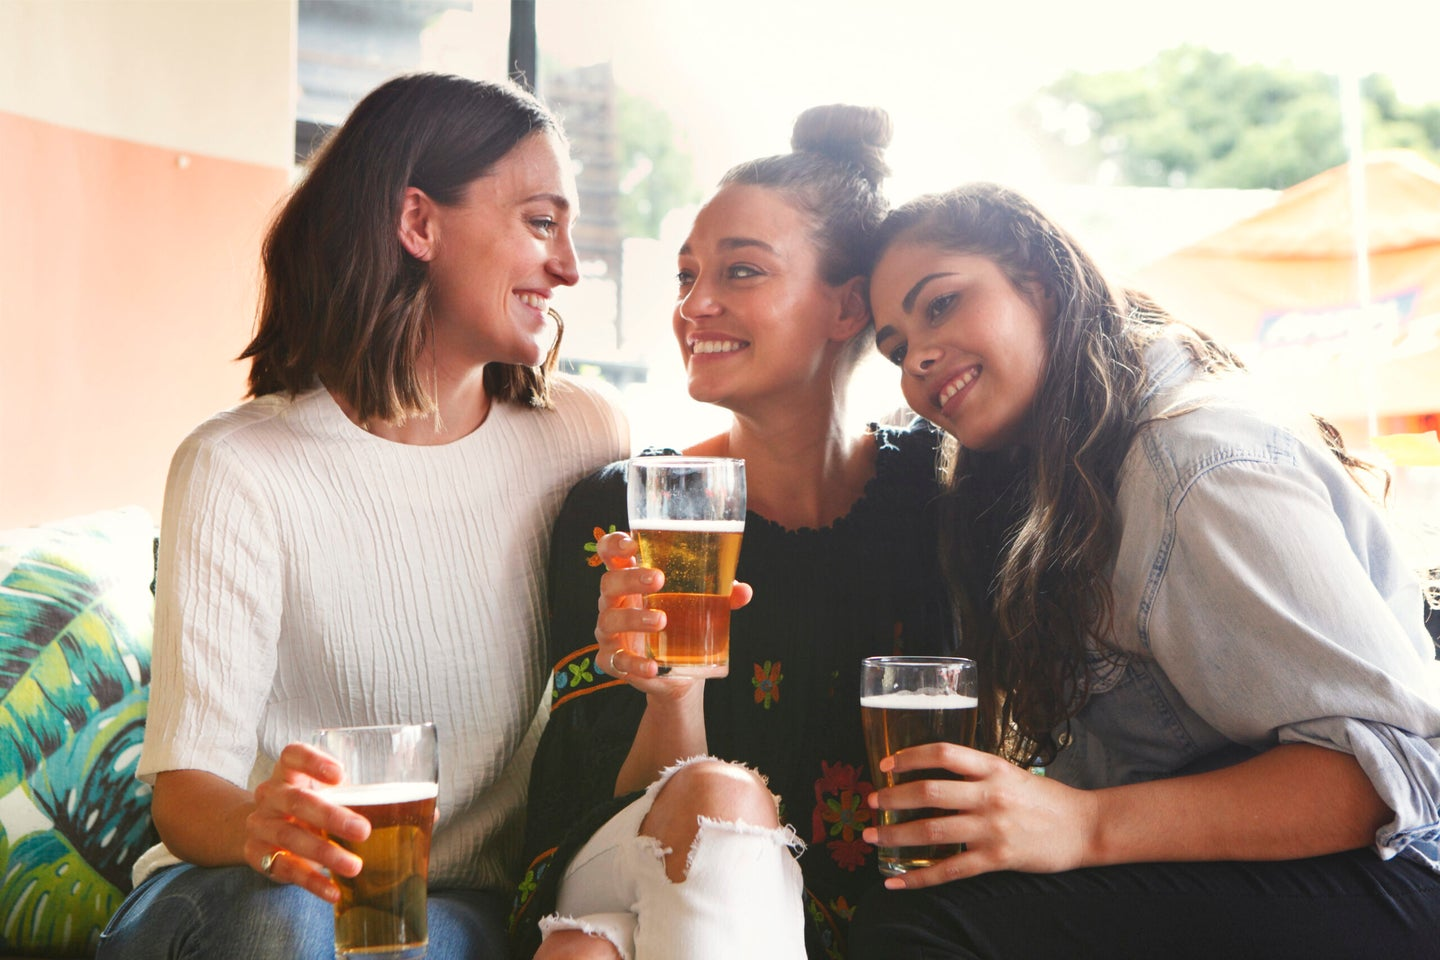 Young girls drinking and having fun together